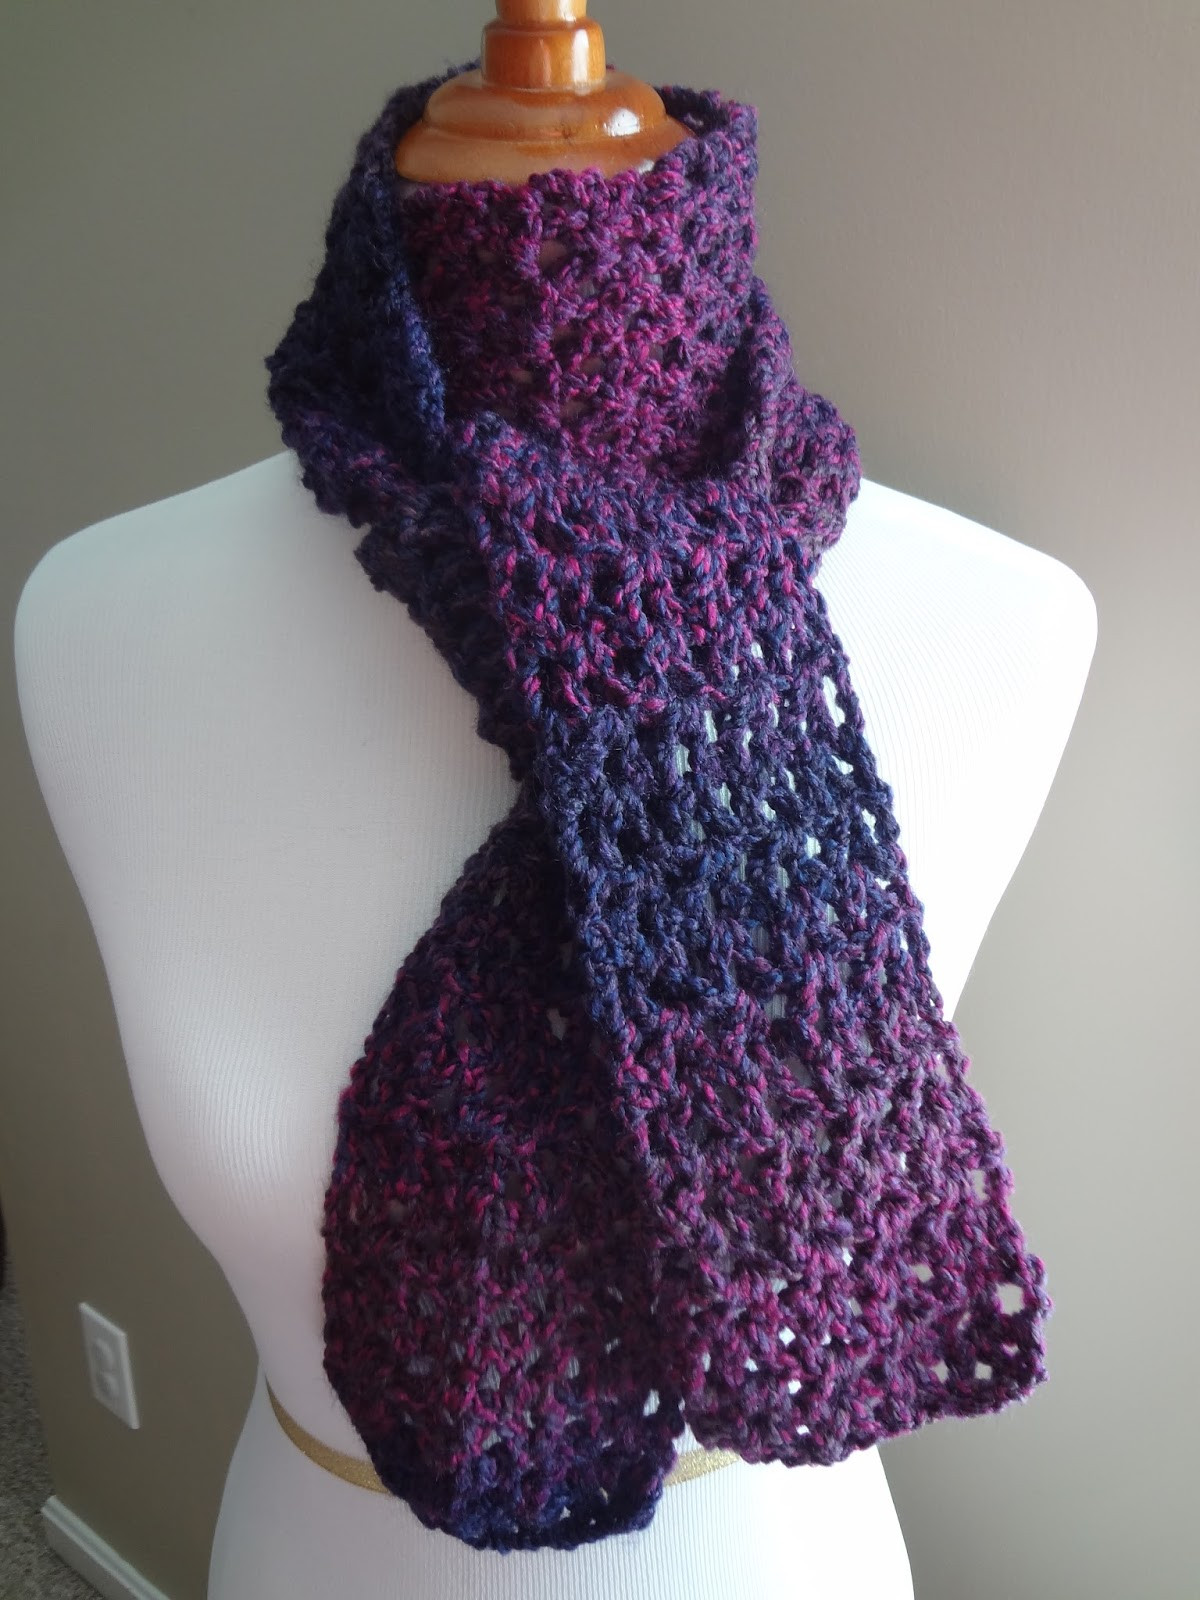 Scarf Crochet New Fiber Flux Free Crochet Pattern Blueberry Pie Scarf Of Innovative 47 Pictures Scarf Crochet